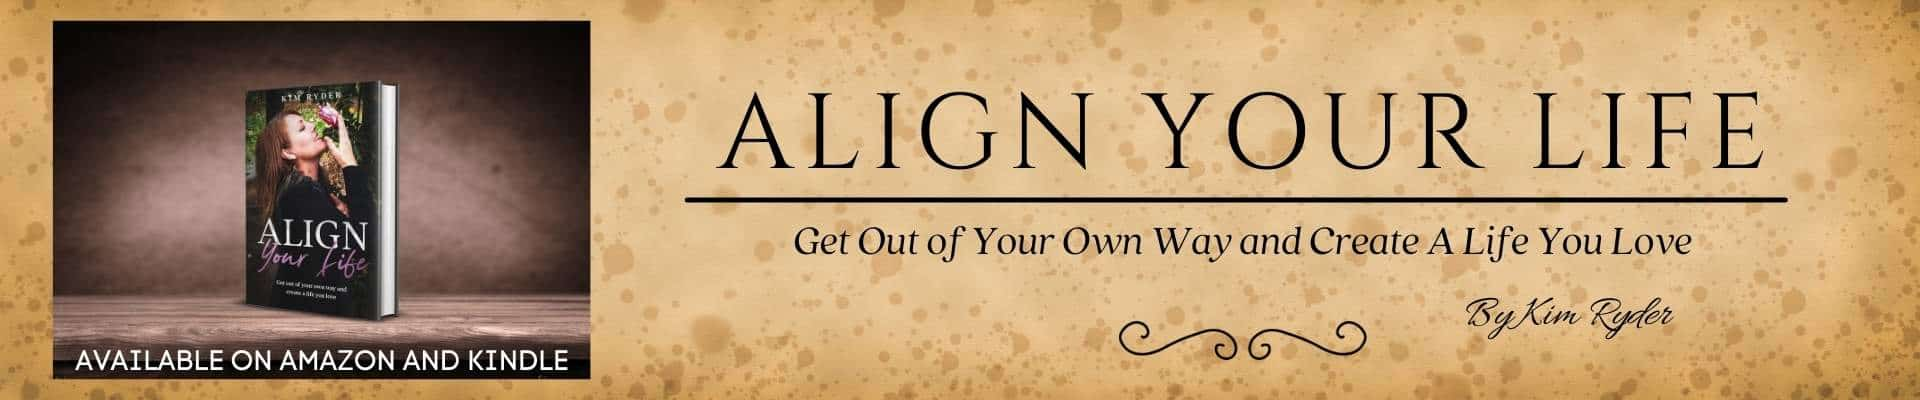 Align Your Life Book